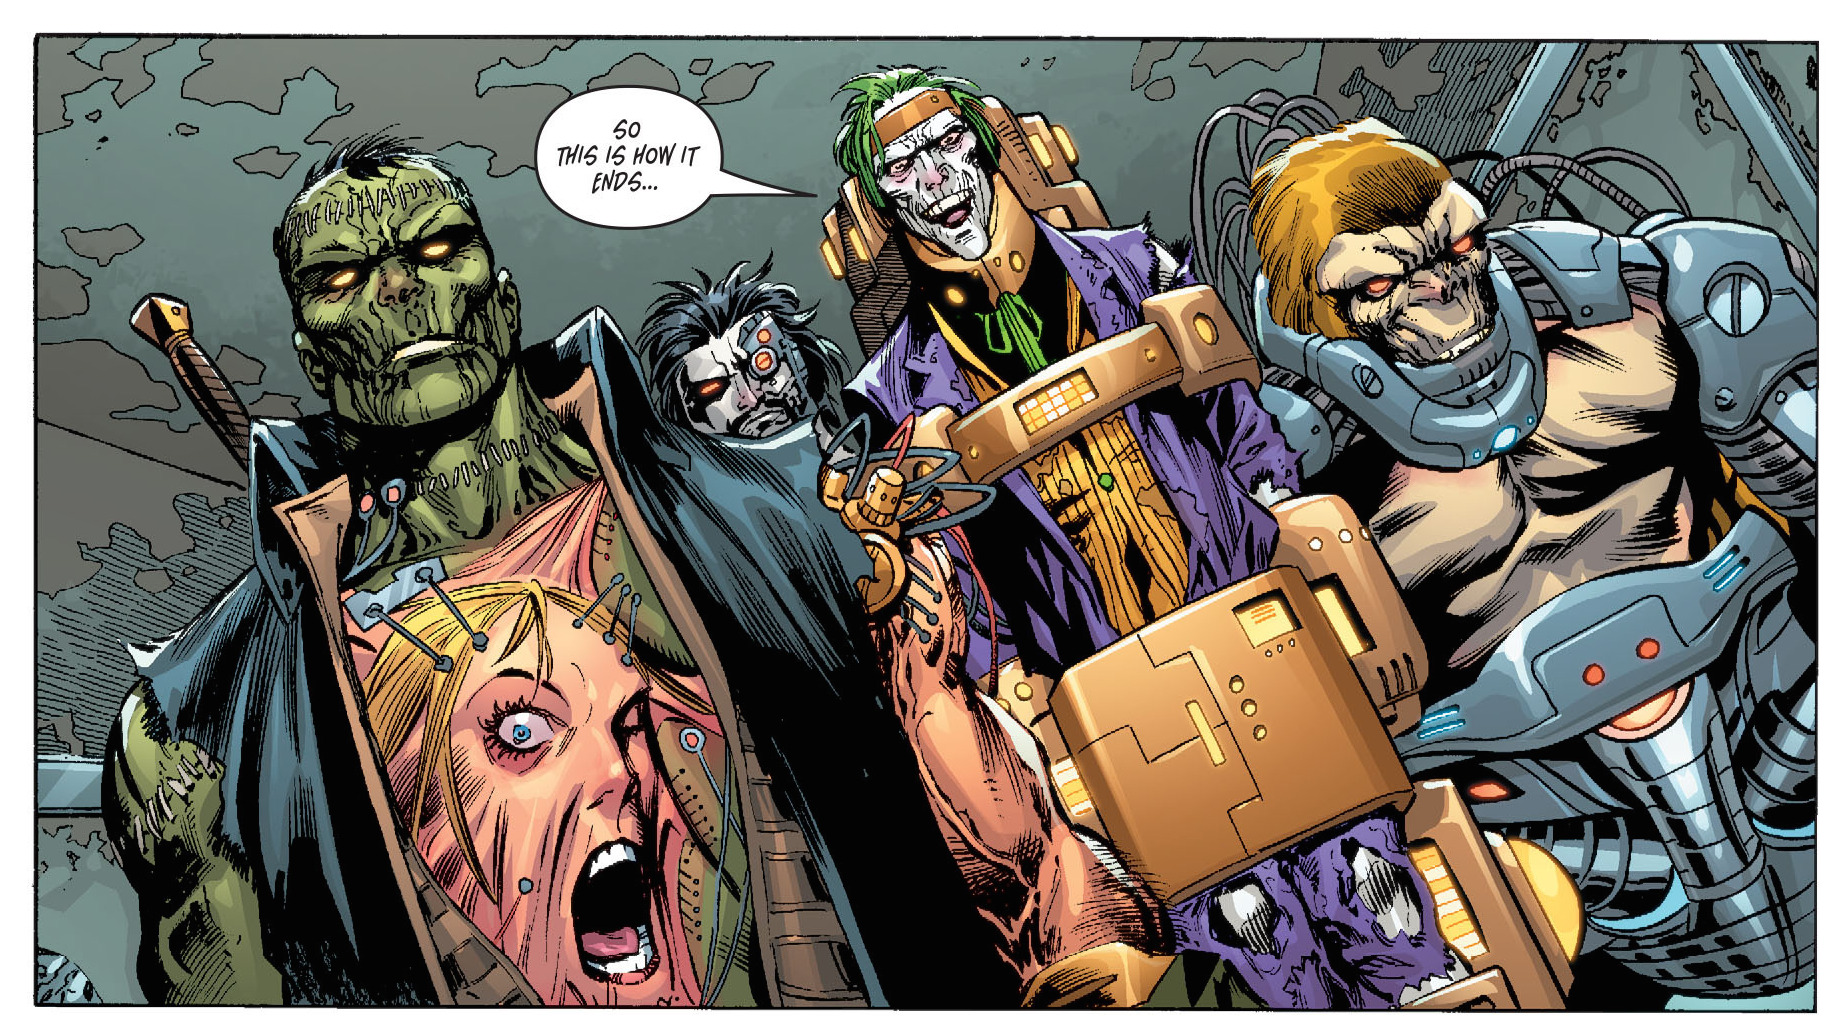 Futures End #12. THIS is the possible future that Terry McGinnis wants to/will erase. Fine by me.